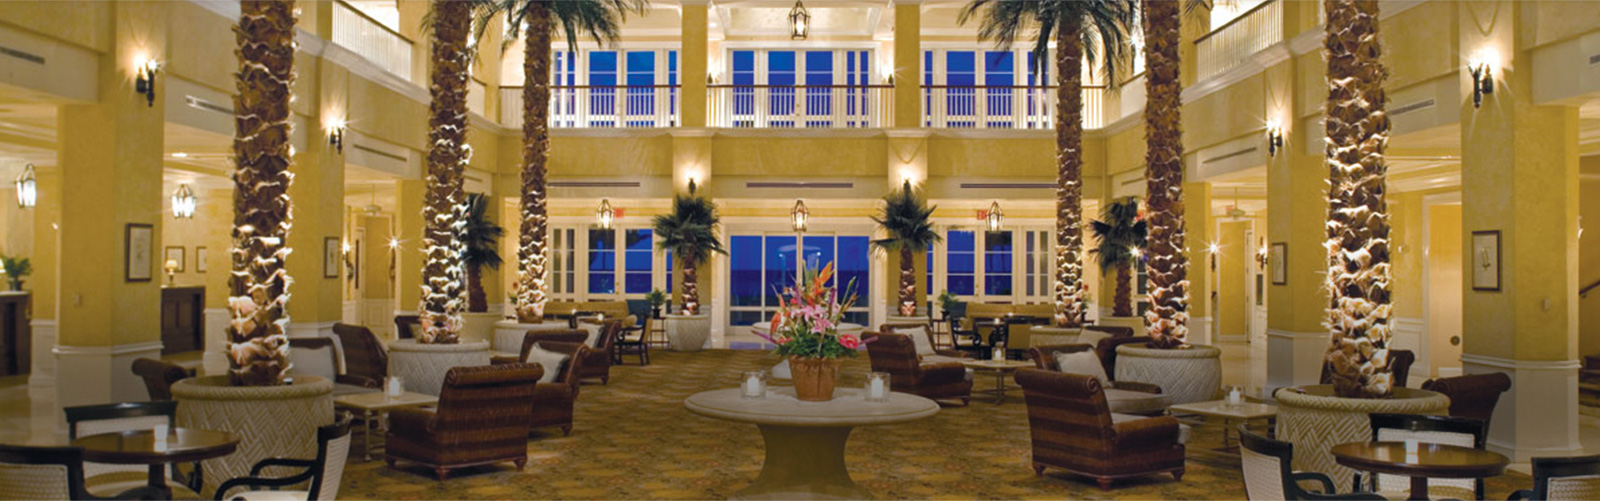 Grand Lucayan Lobby